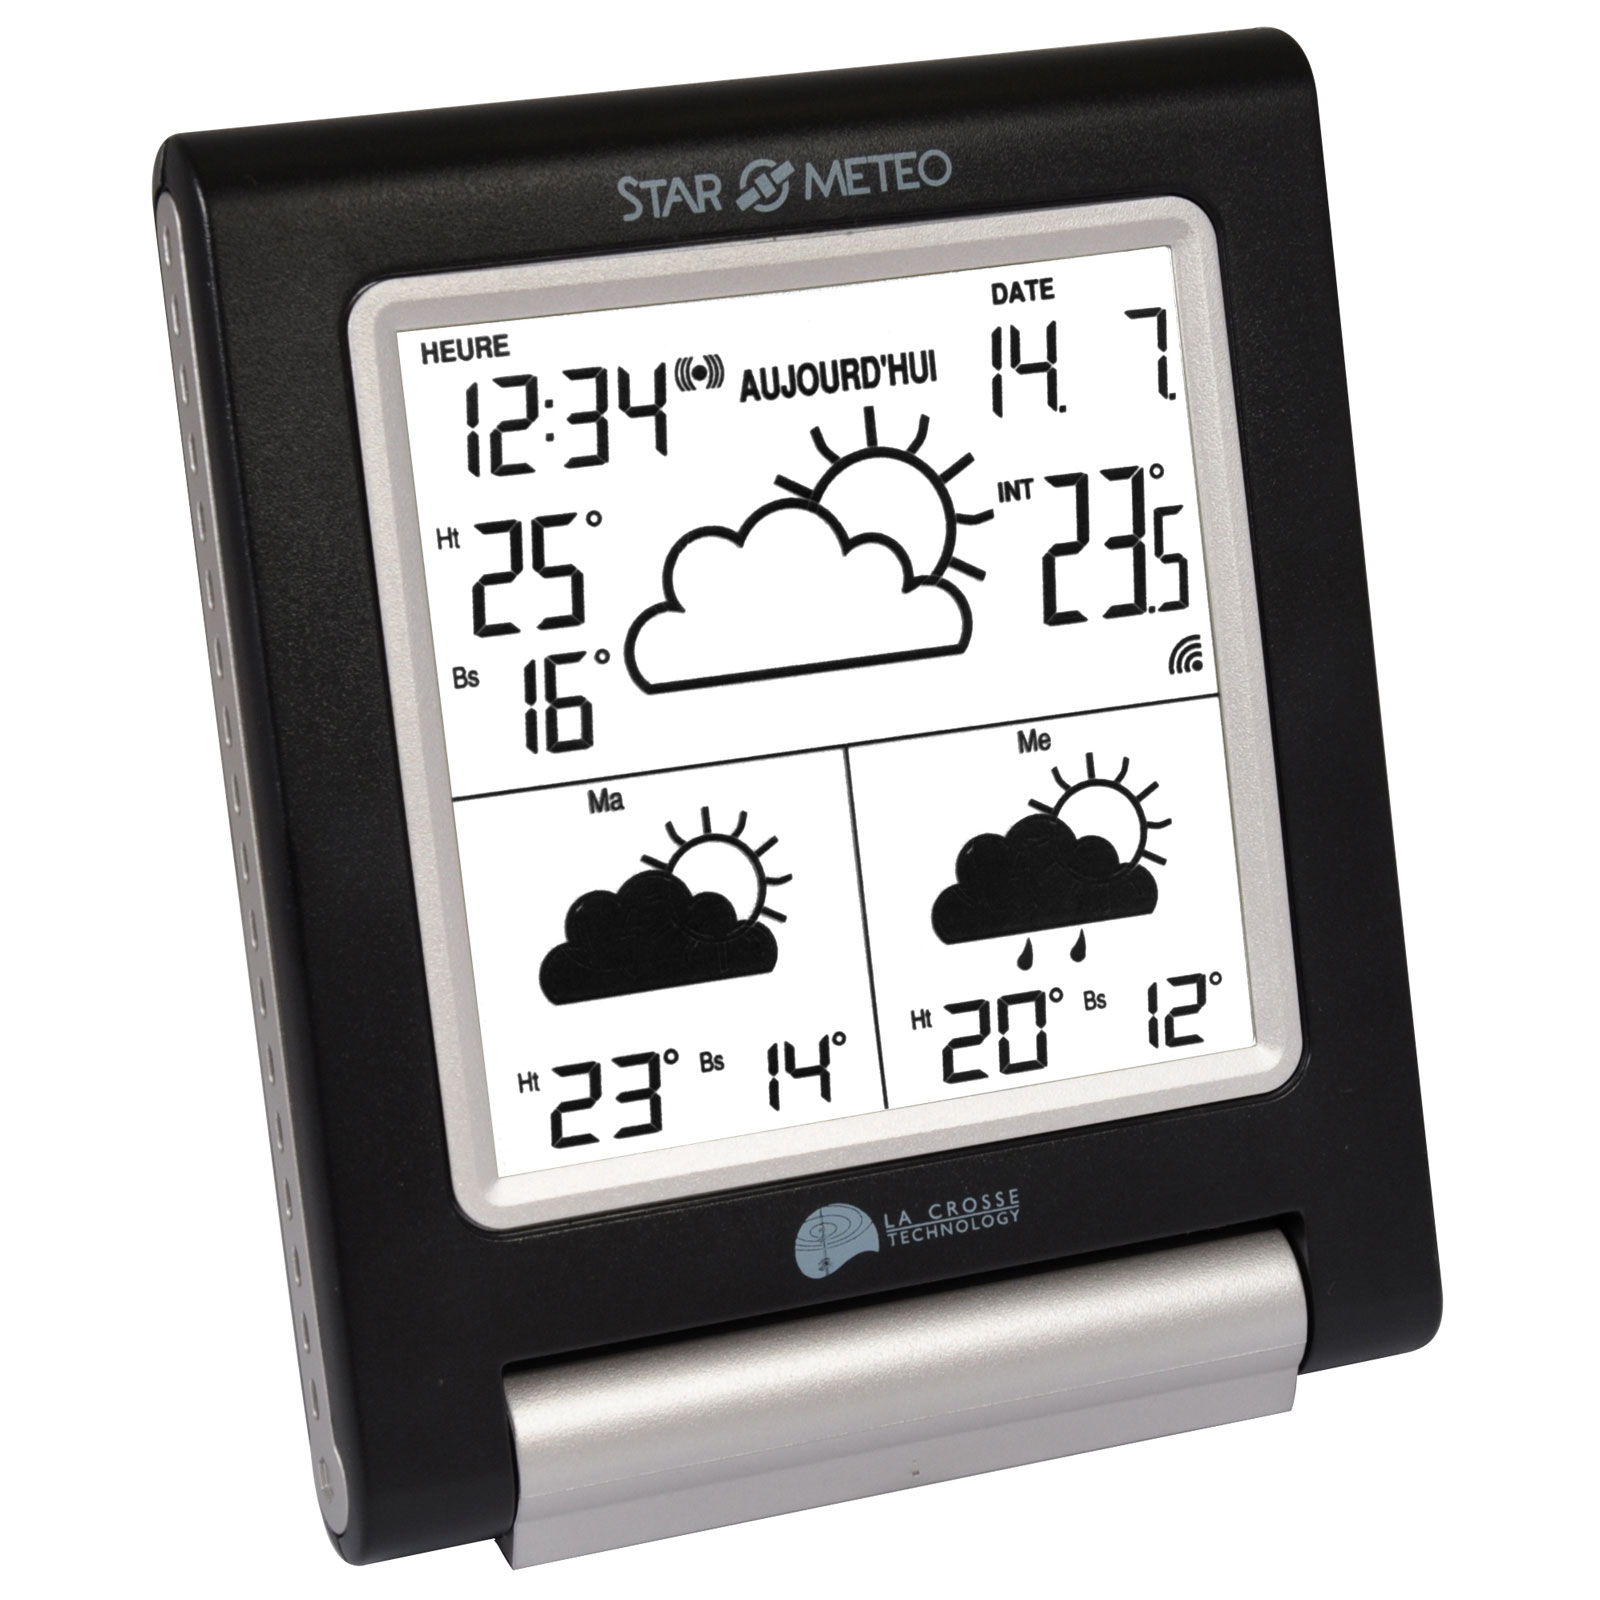 La crosse technology wd1201 noir version fran aise for Station meteo avec sonde piscine